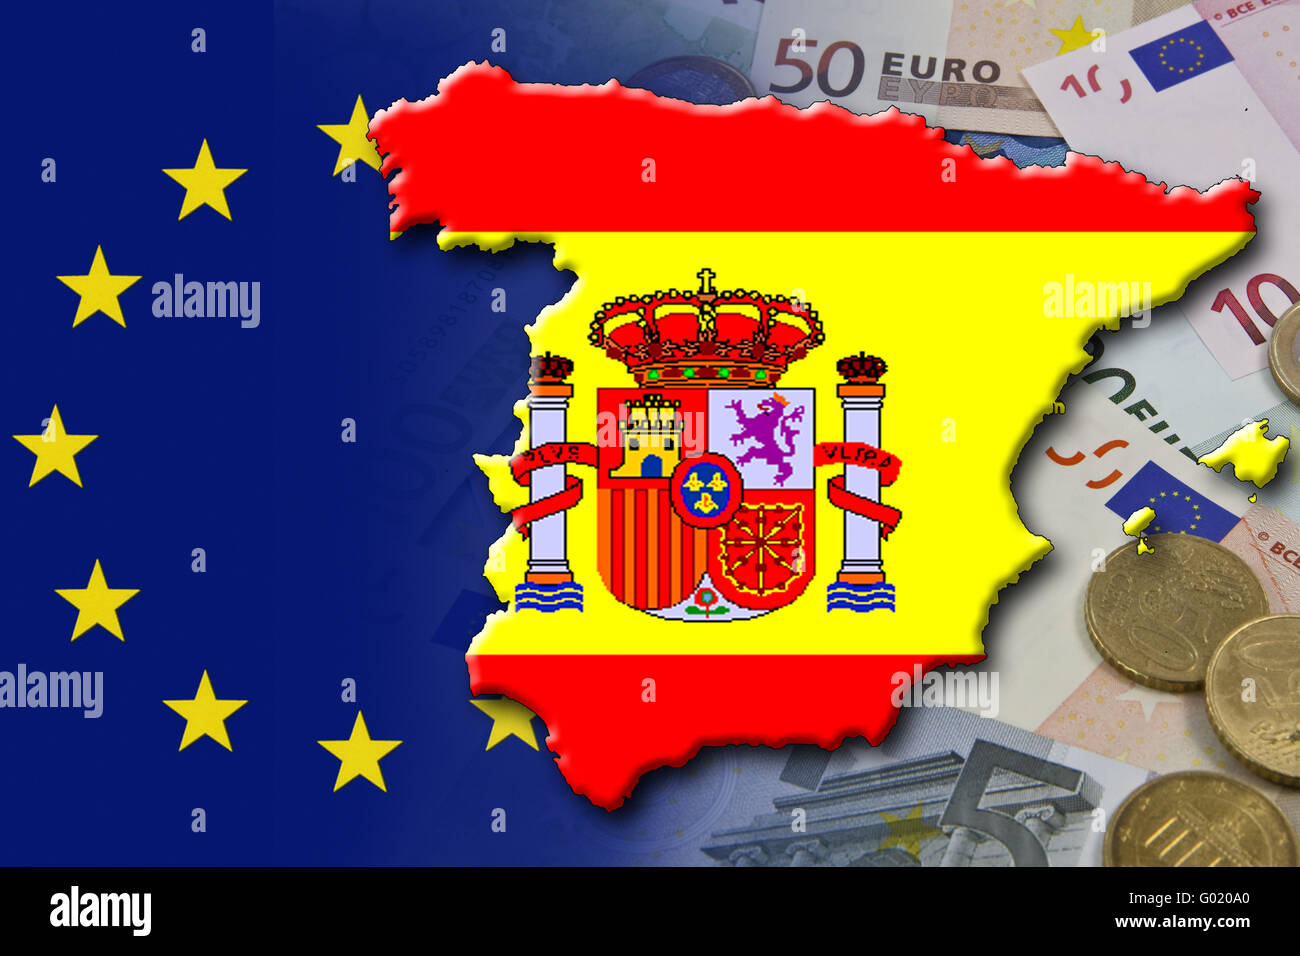 Financial and economic crisis in the euro area in Europe of the country Spain - Stock Image